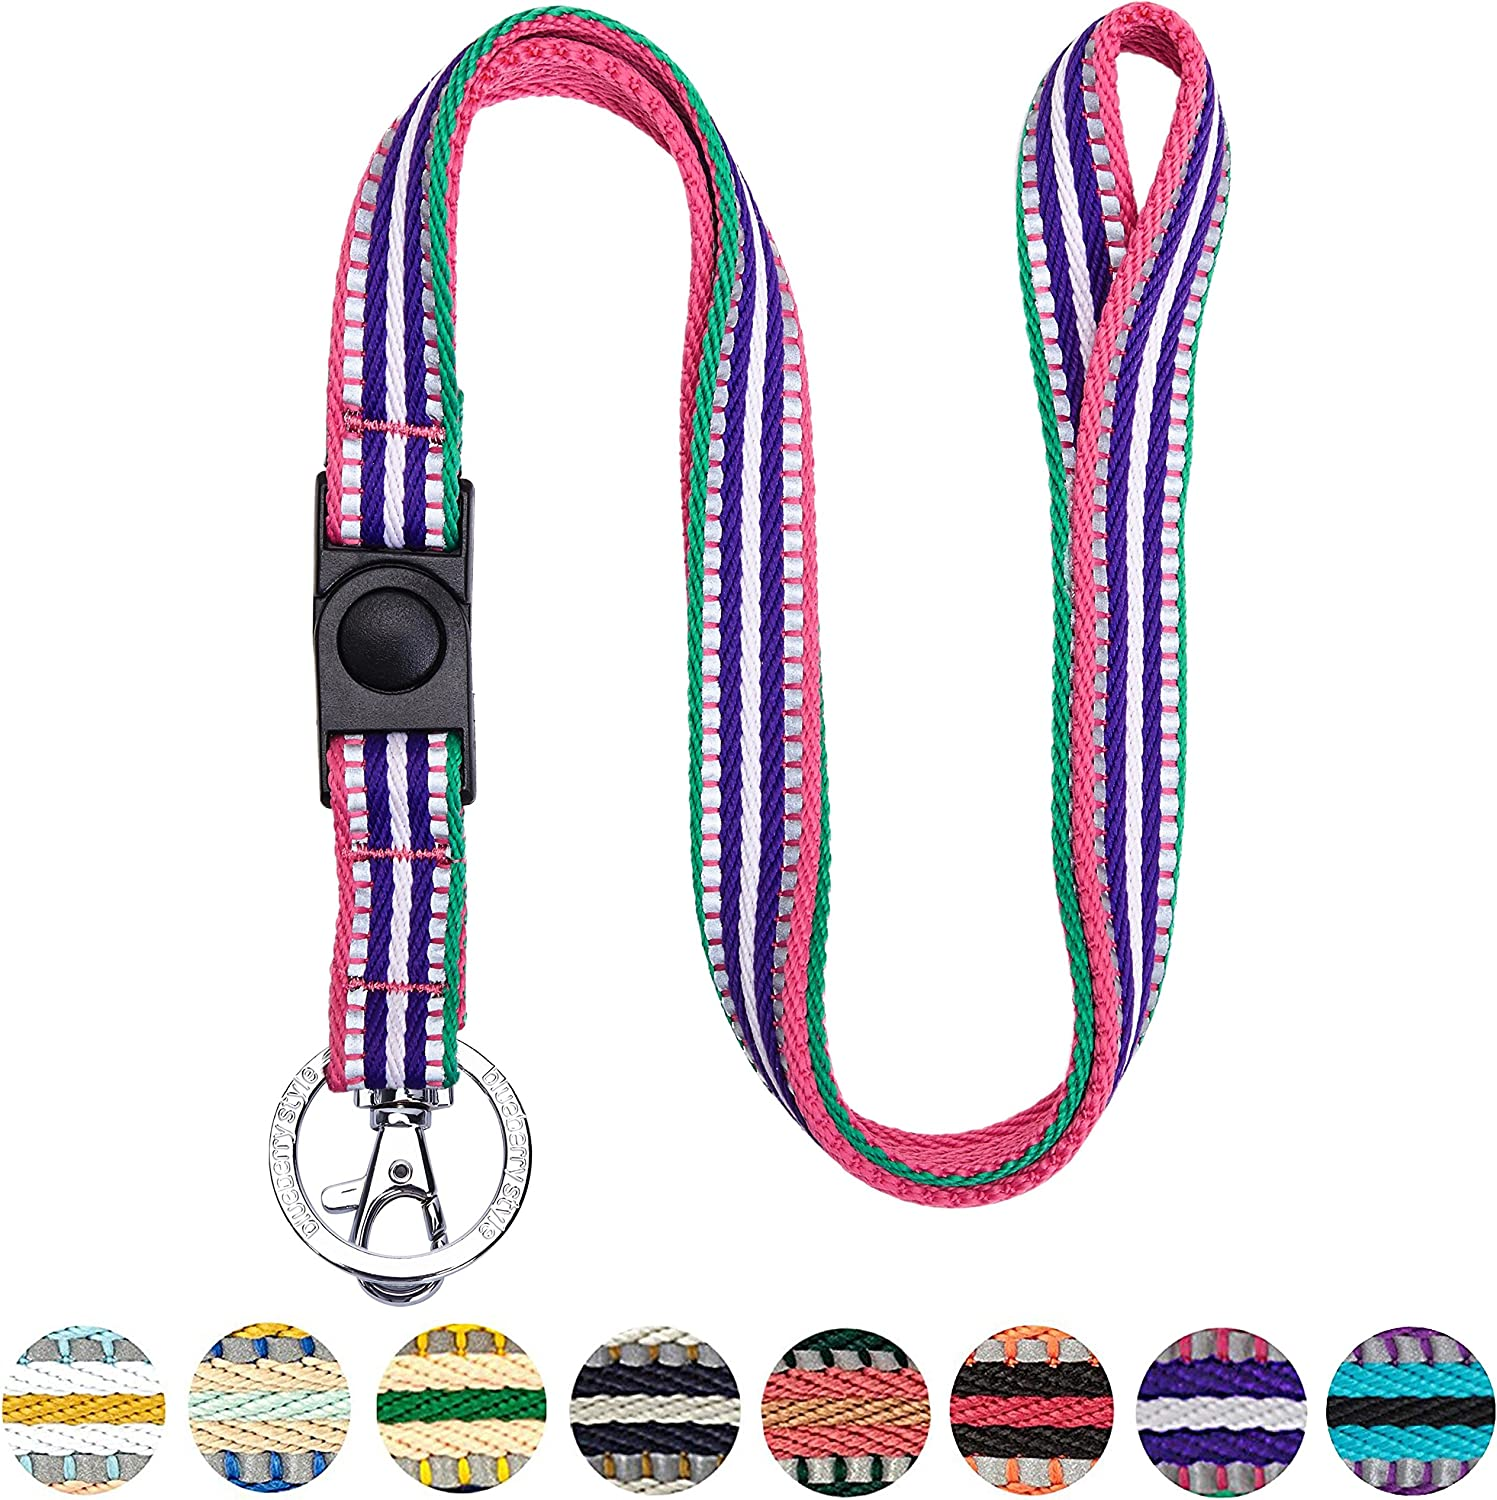 Orchid and Lavender Blueberry Pet 3M Reflective Multi-Colored Stripe Dog Collar Neck 12-16 Small Adjustable Collars for Dogs